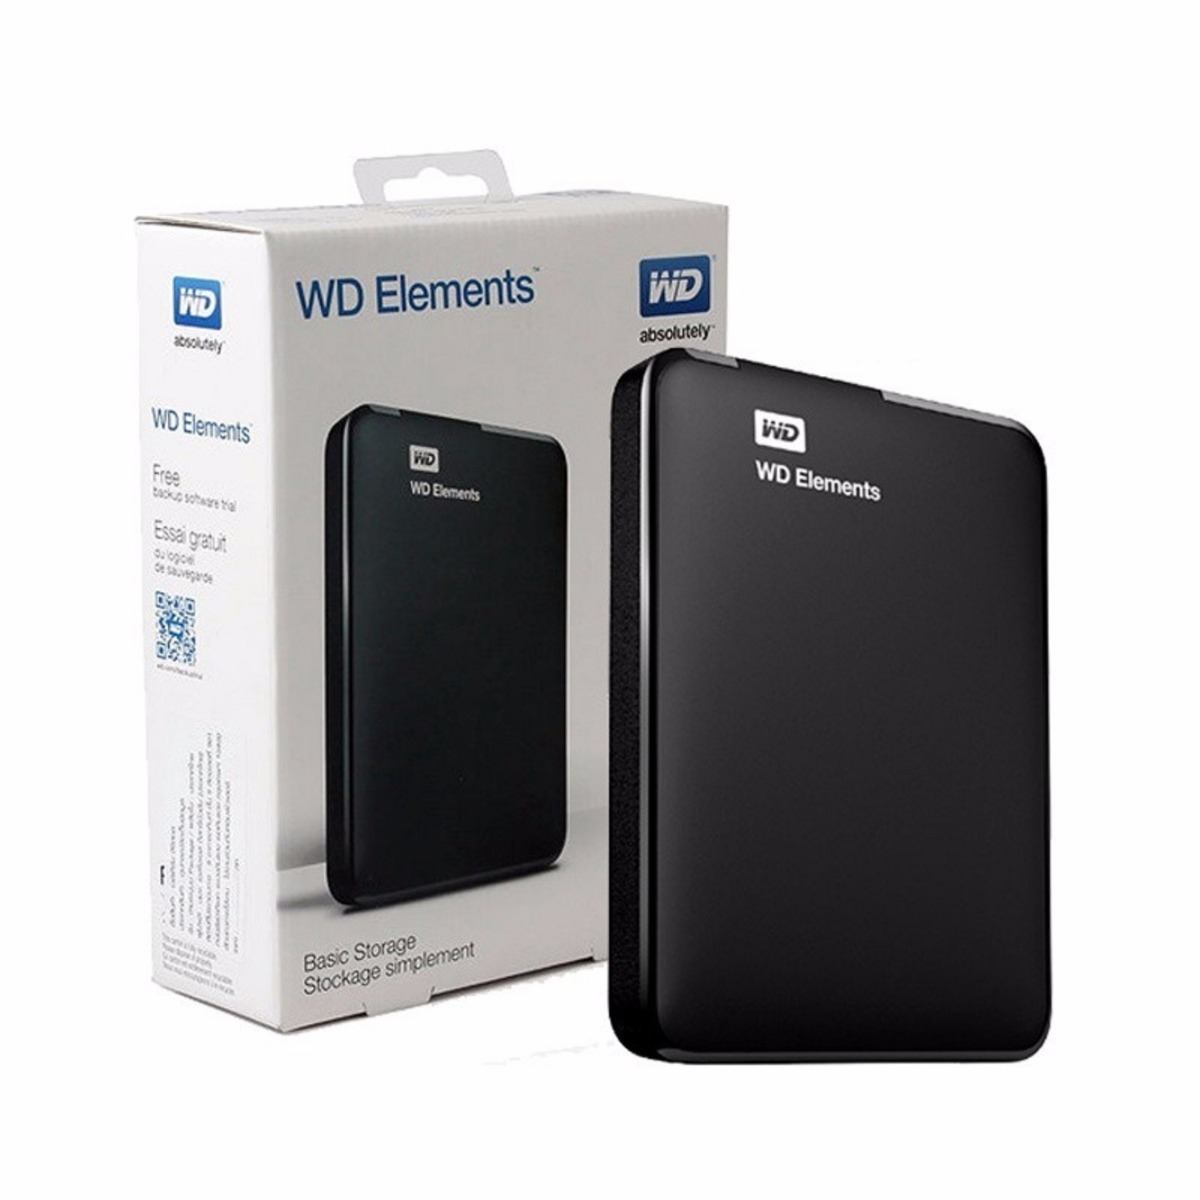 DISCO EXTERNO 1TB WESTERN DIGITAL ELEMENTS 3.0 EXTERNO